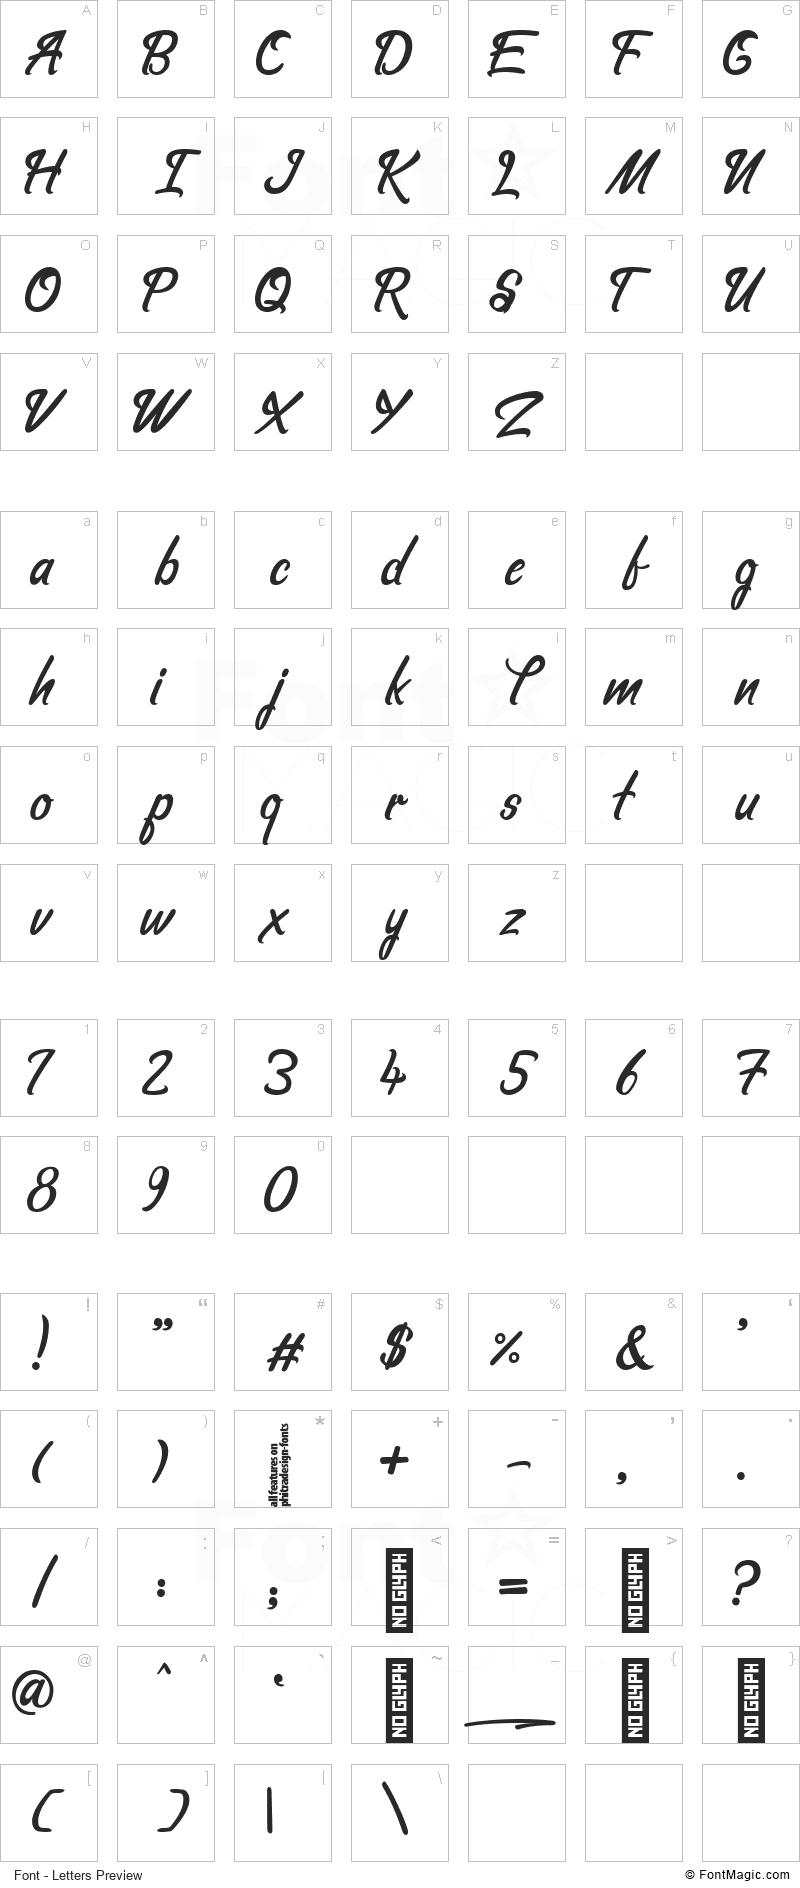 Hello Love Font - All Latters Preview Chart